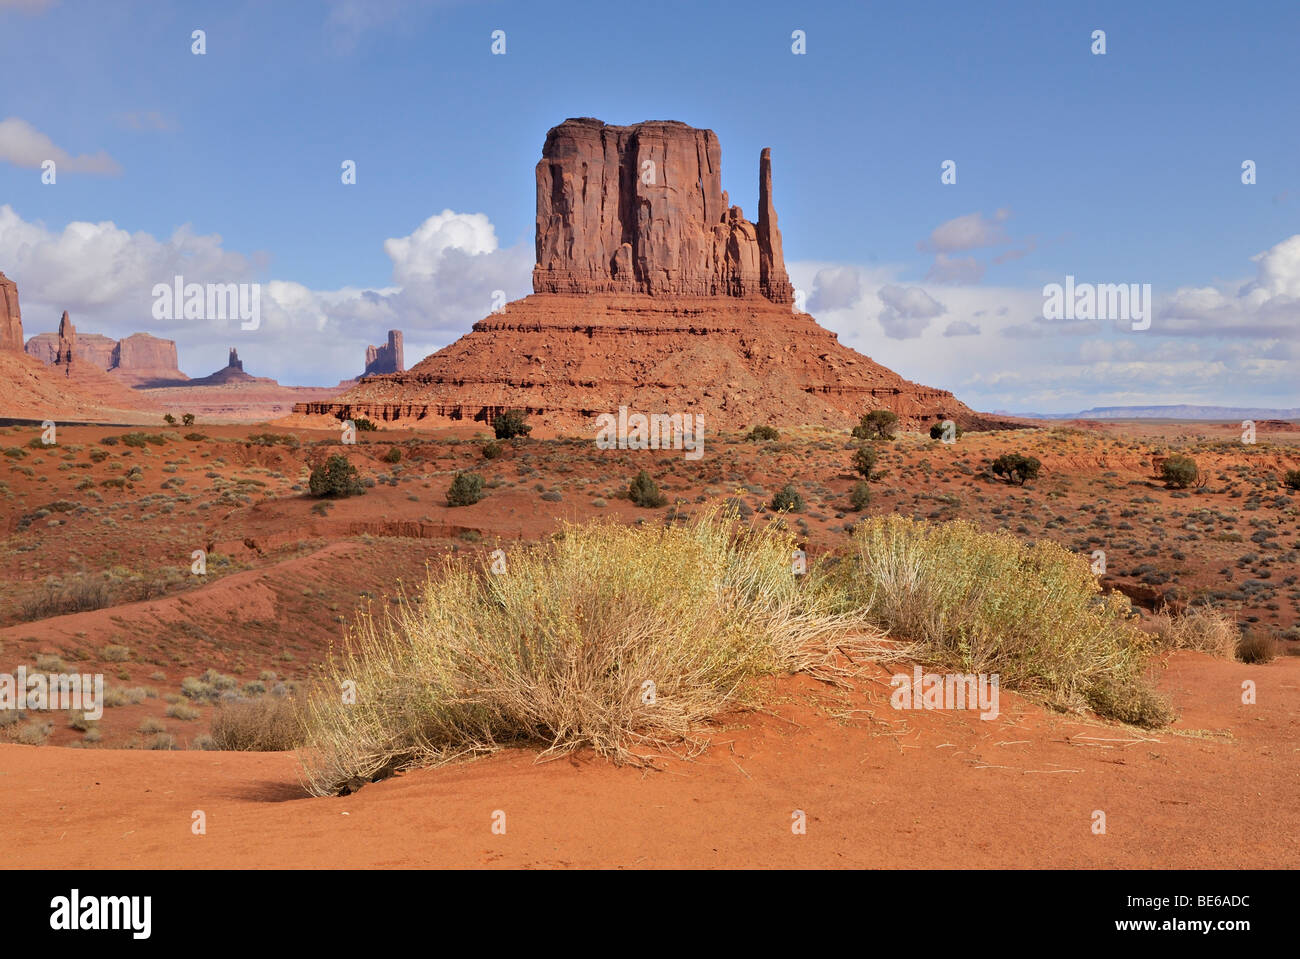 West Mitten Butte, multi-layered red sandstone, Monument Valley Navajo Nation Park, Arizona, USA - Stock Image